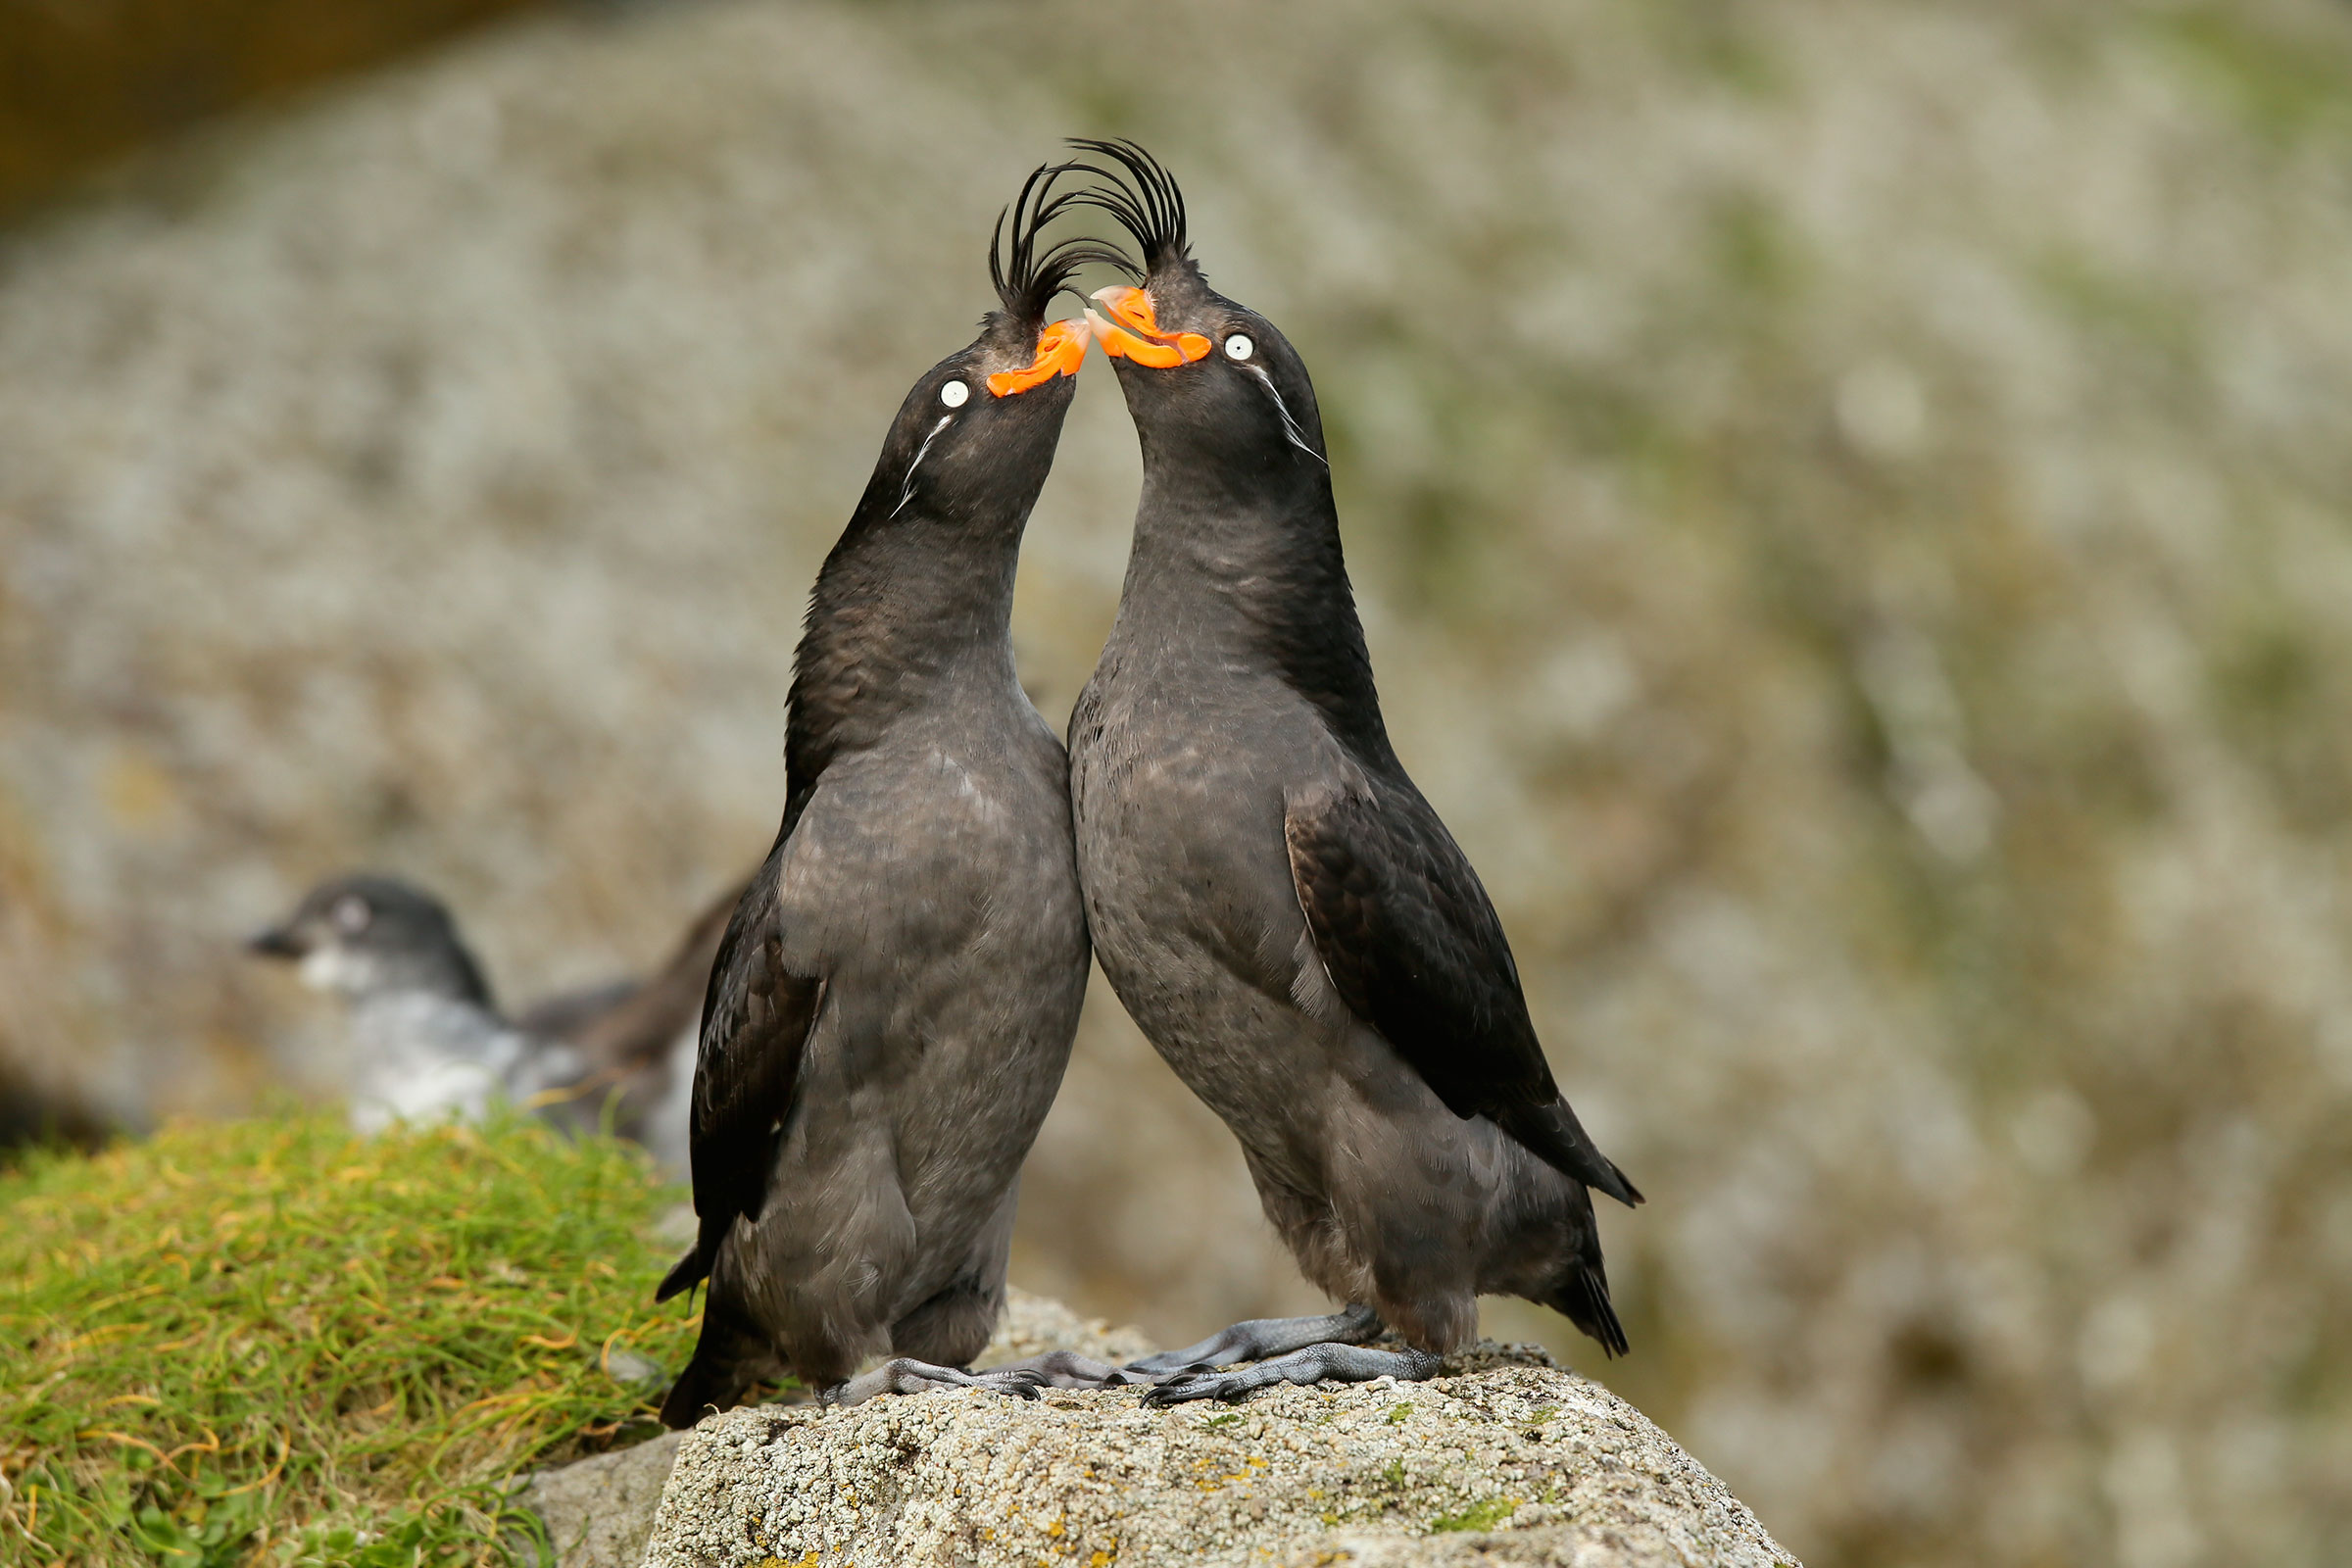 An undisturbed Crested Auklet courting pair (male on right, female on left - identifiable by their differing bill shape). Ian L. Jones